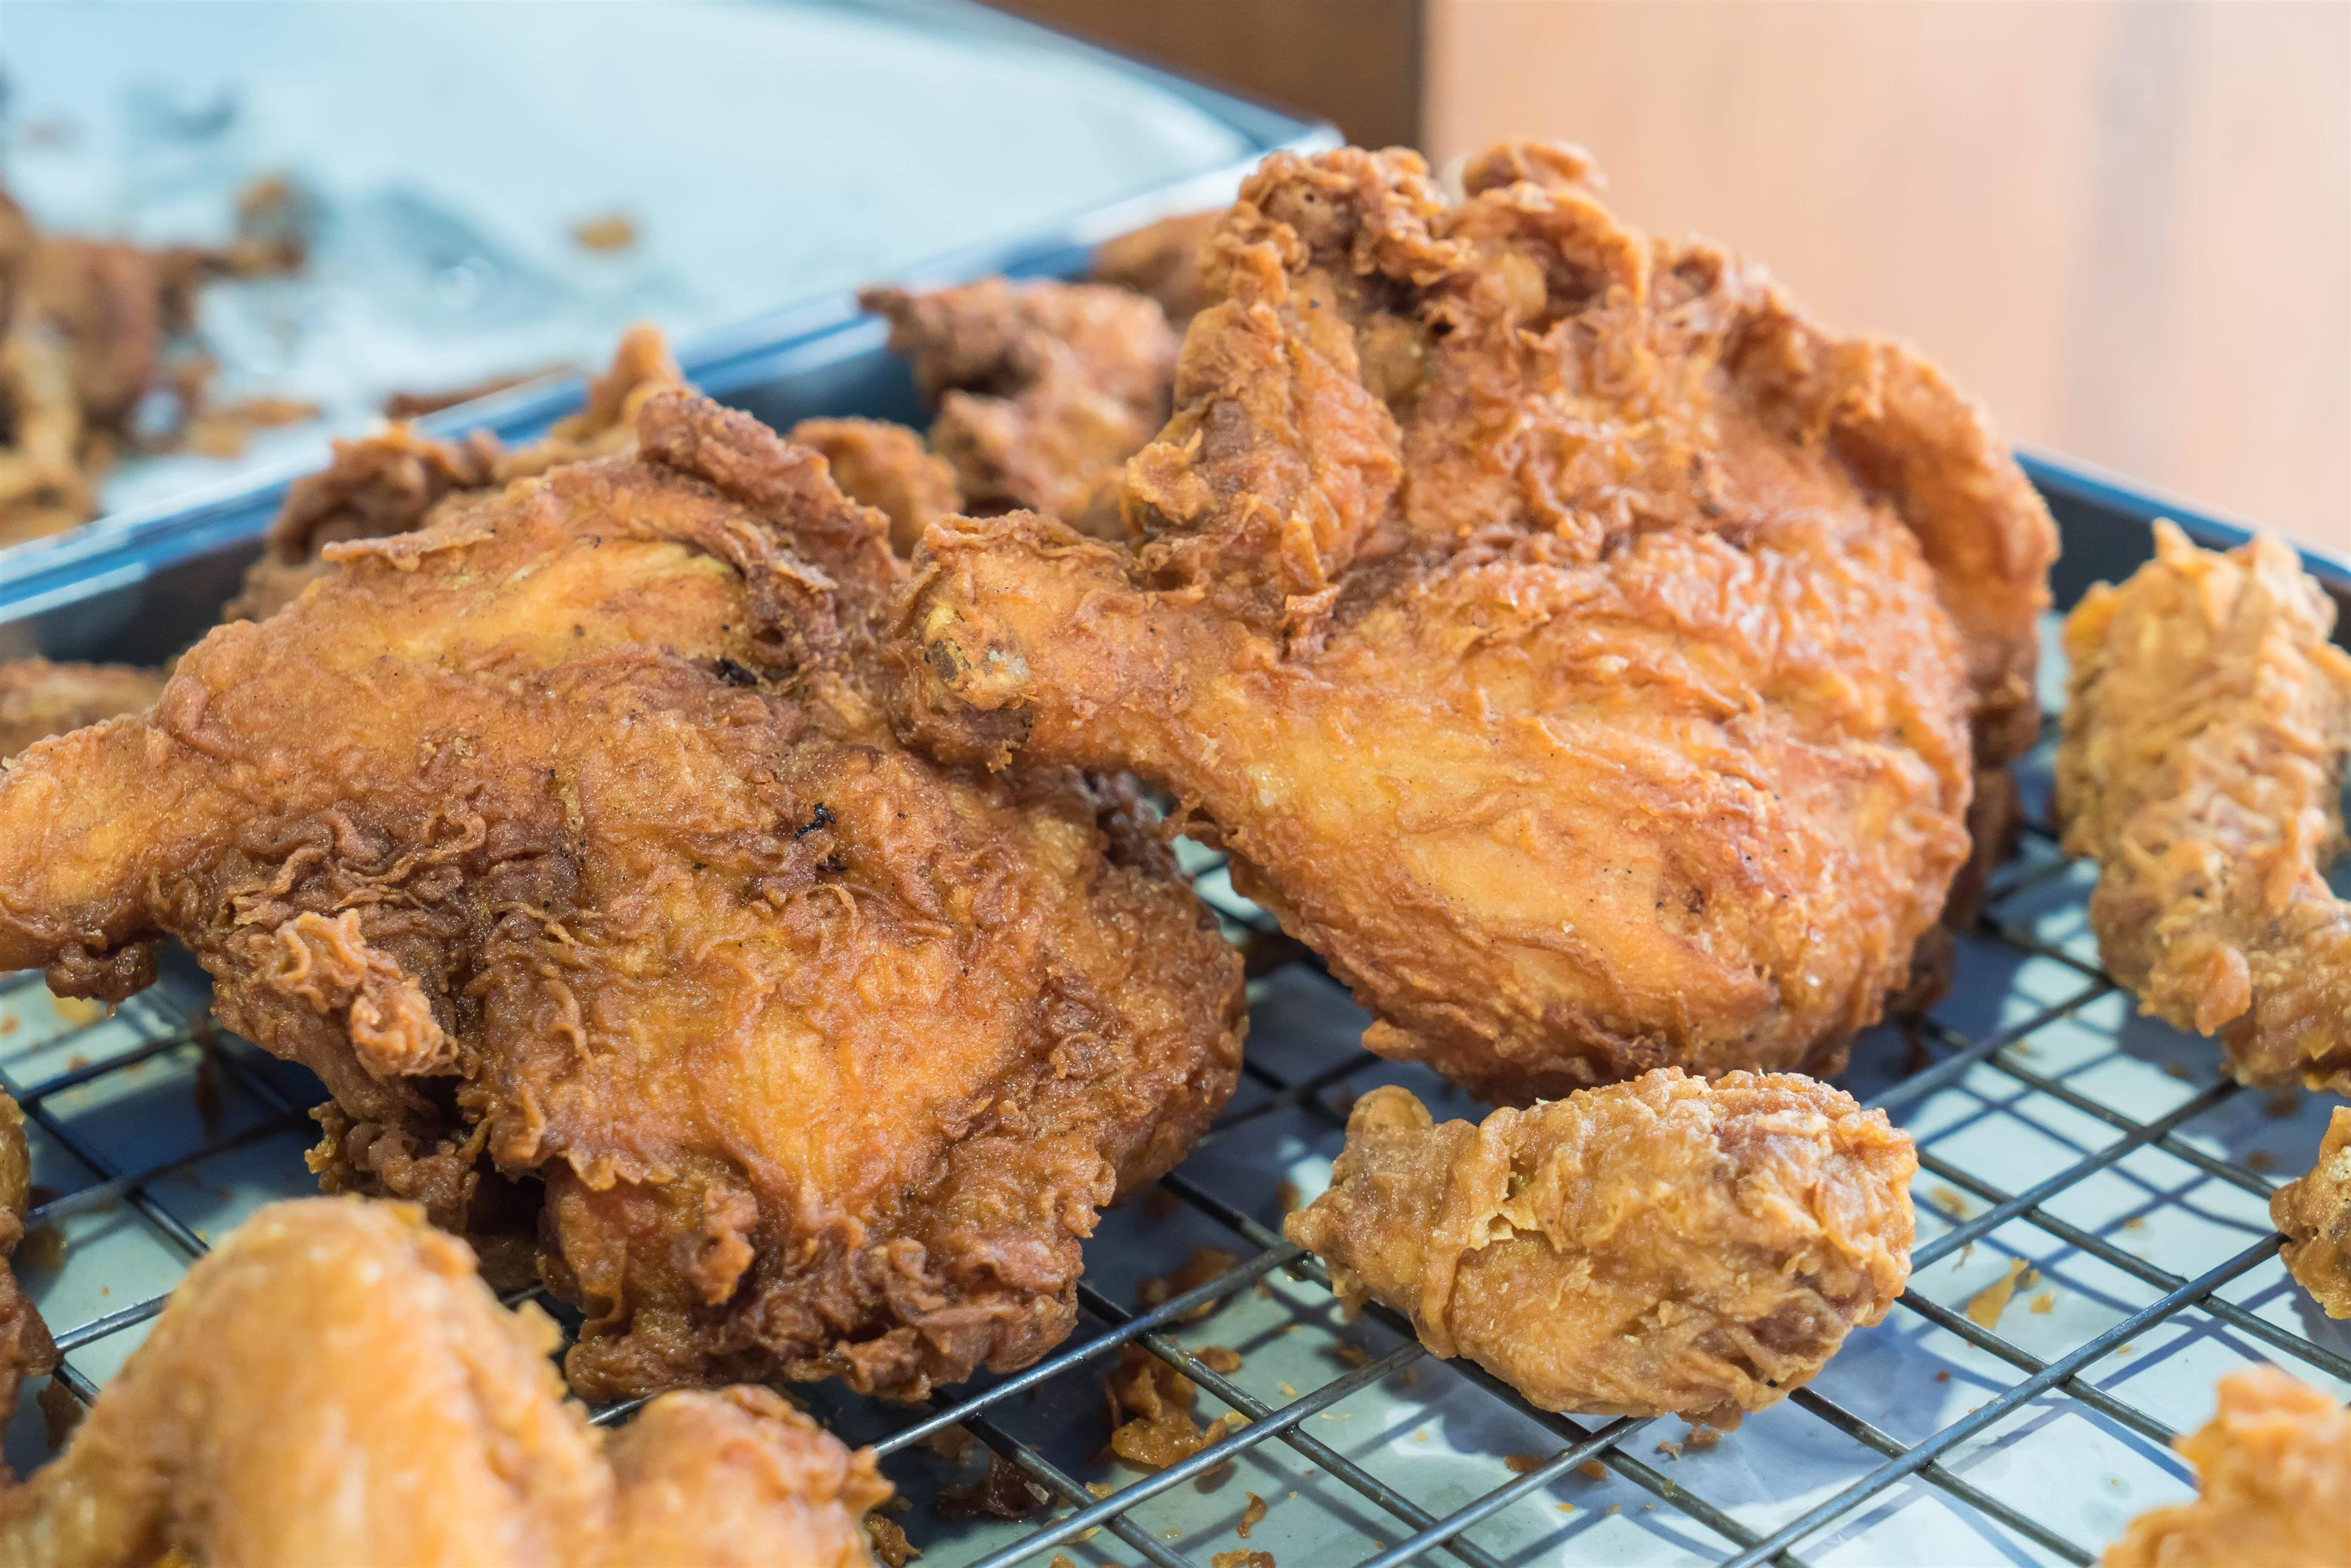 Crispy fried chicken on a baking rack